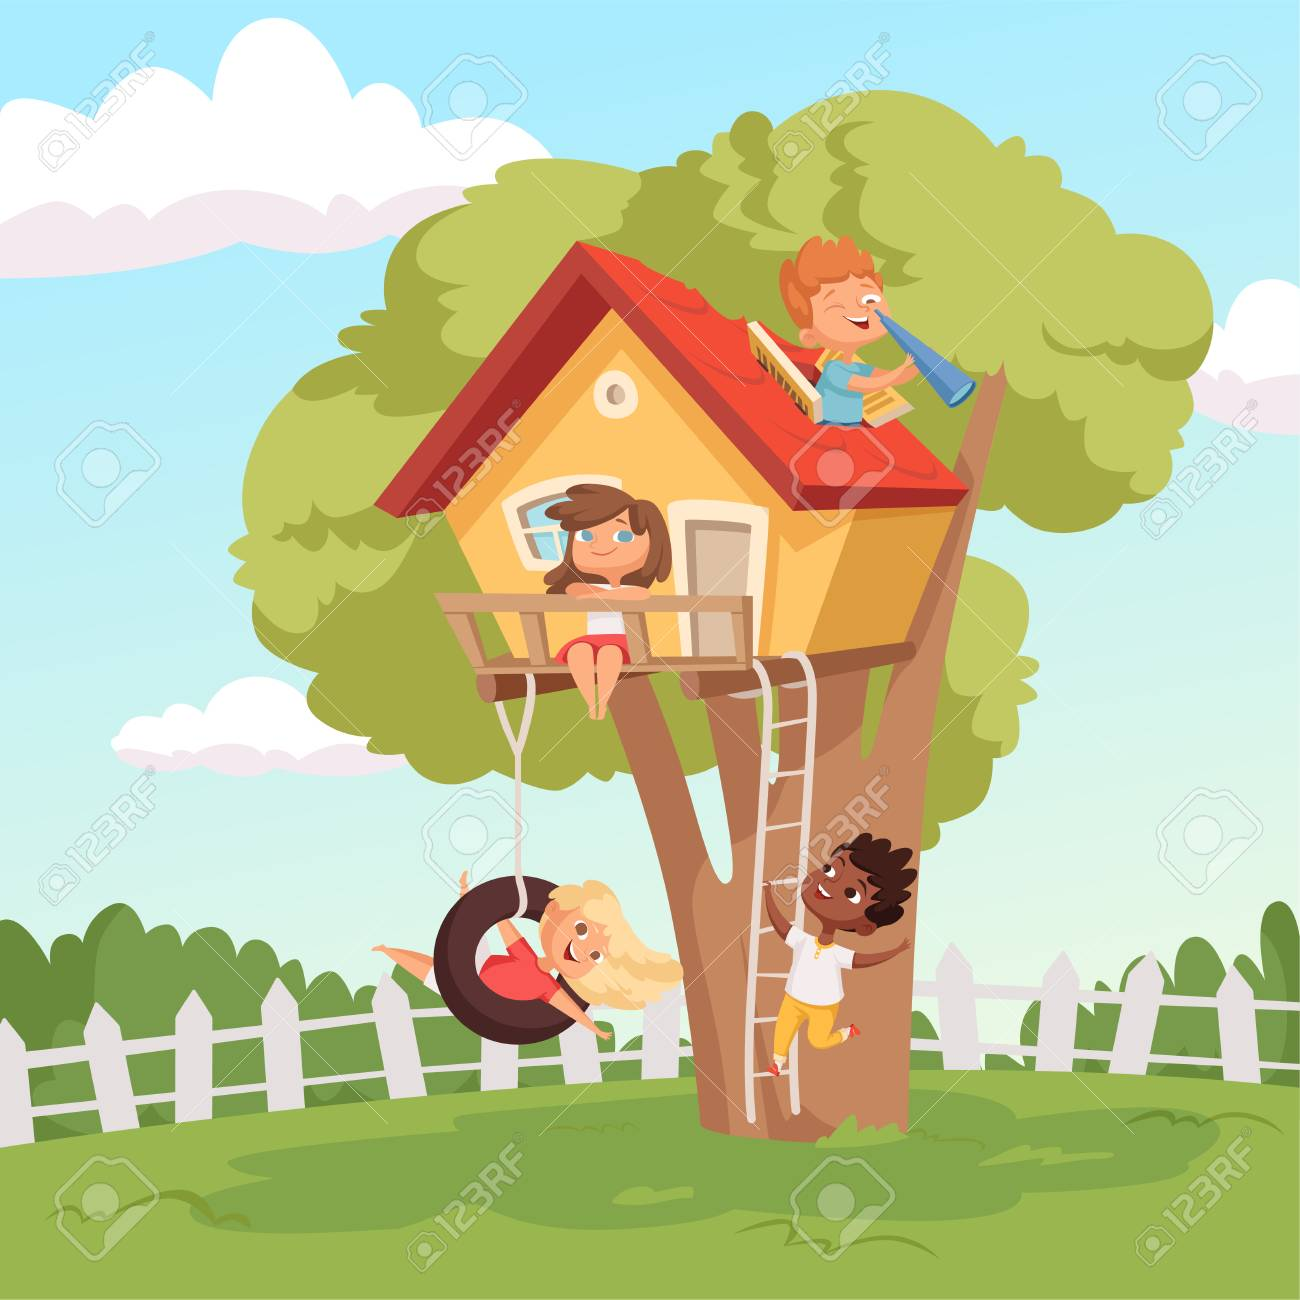 House On Tree Cute Children Playing In Garden Nature Climbing